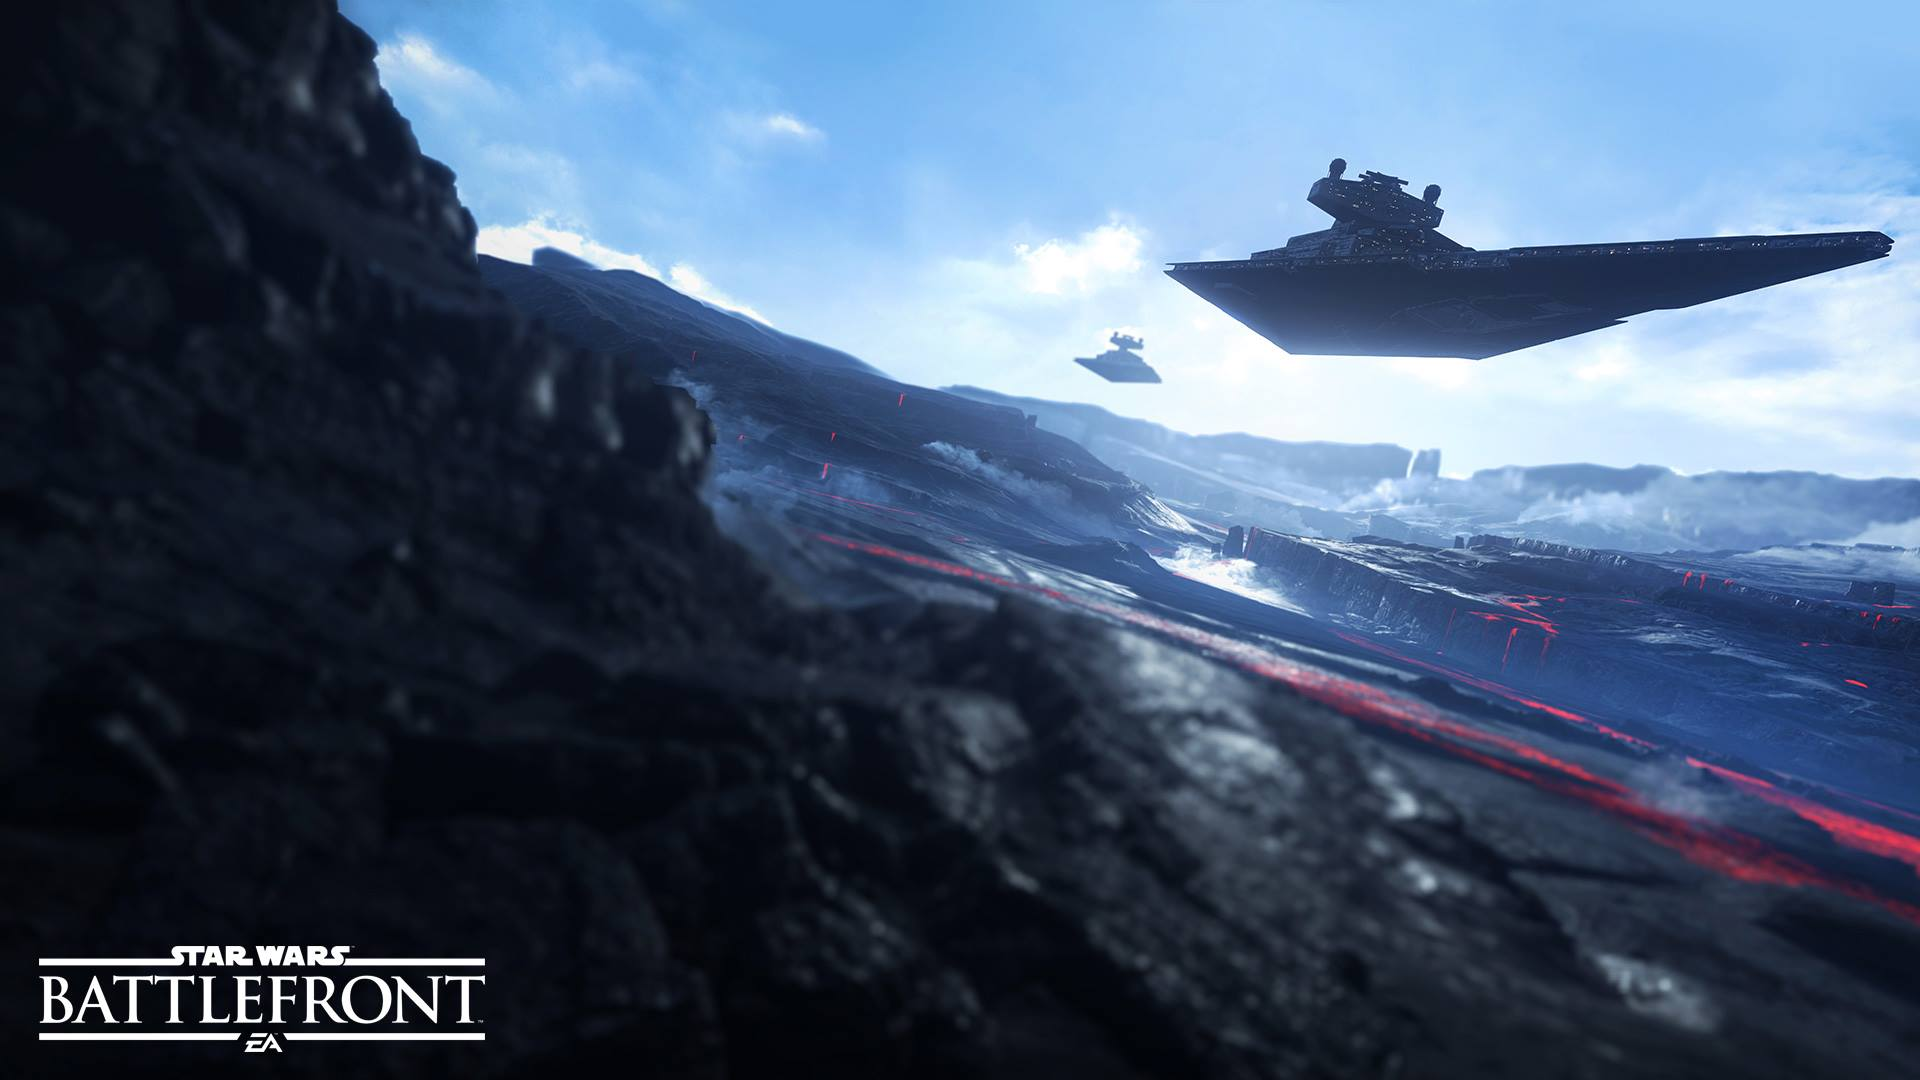 Here Are Some Glorious Star Wars Battlefront HD Wallpapers - GameSpot